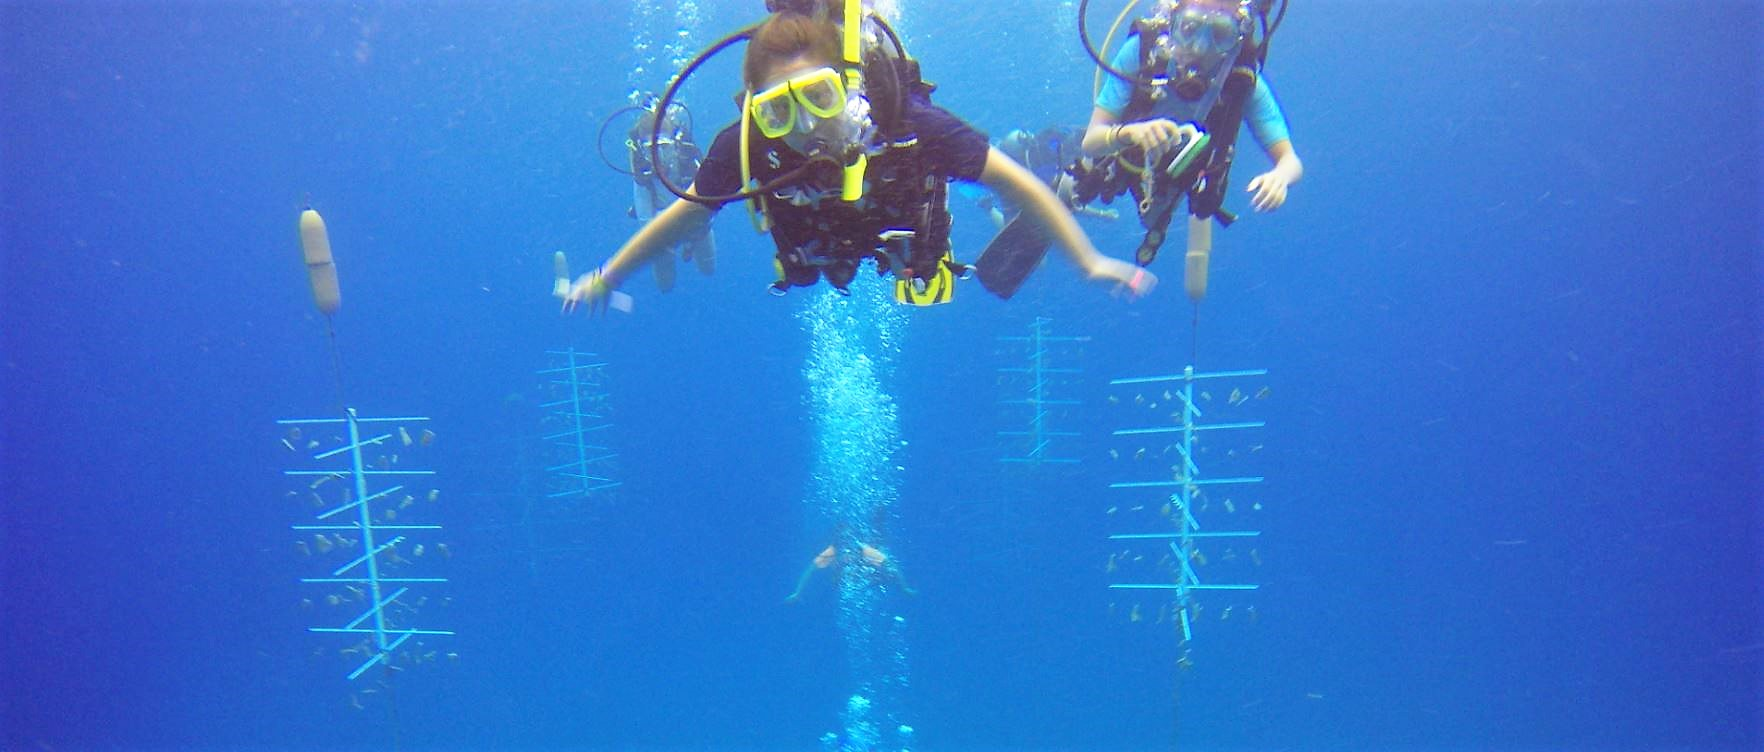 """Coral Restoration - The Roatan Institute for Marine Sciences installed 12 """"trees"""" to cultivate coral for restoring the reef.Students learn about coral propagation in the classroom and then dive the coral nursery. They earn service hours by cleaning the infrastructure that supports healthy young colonies."""